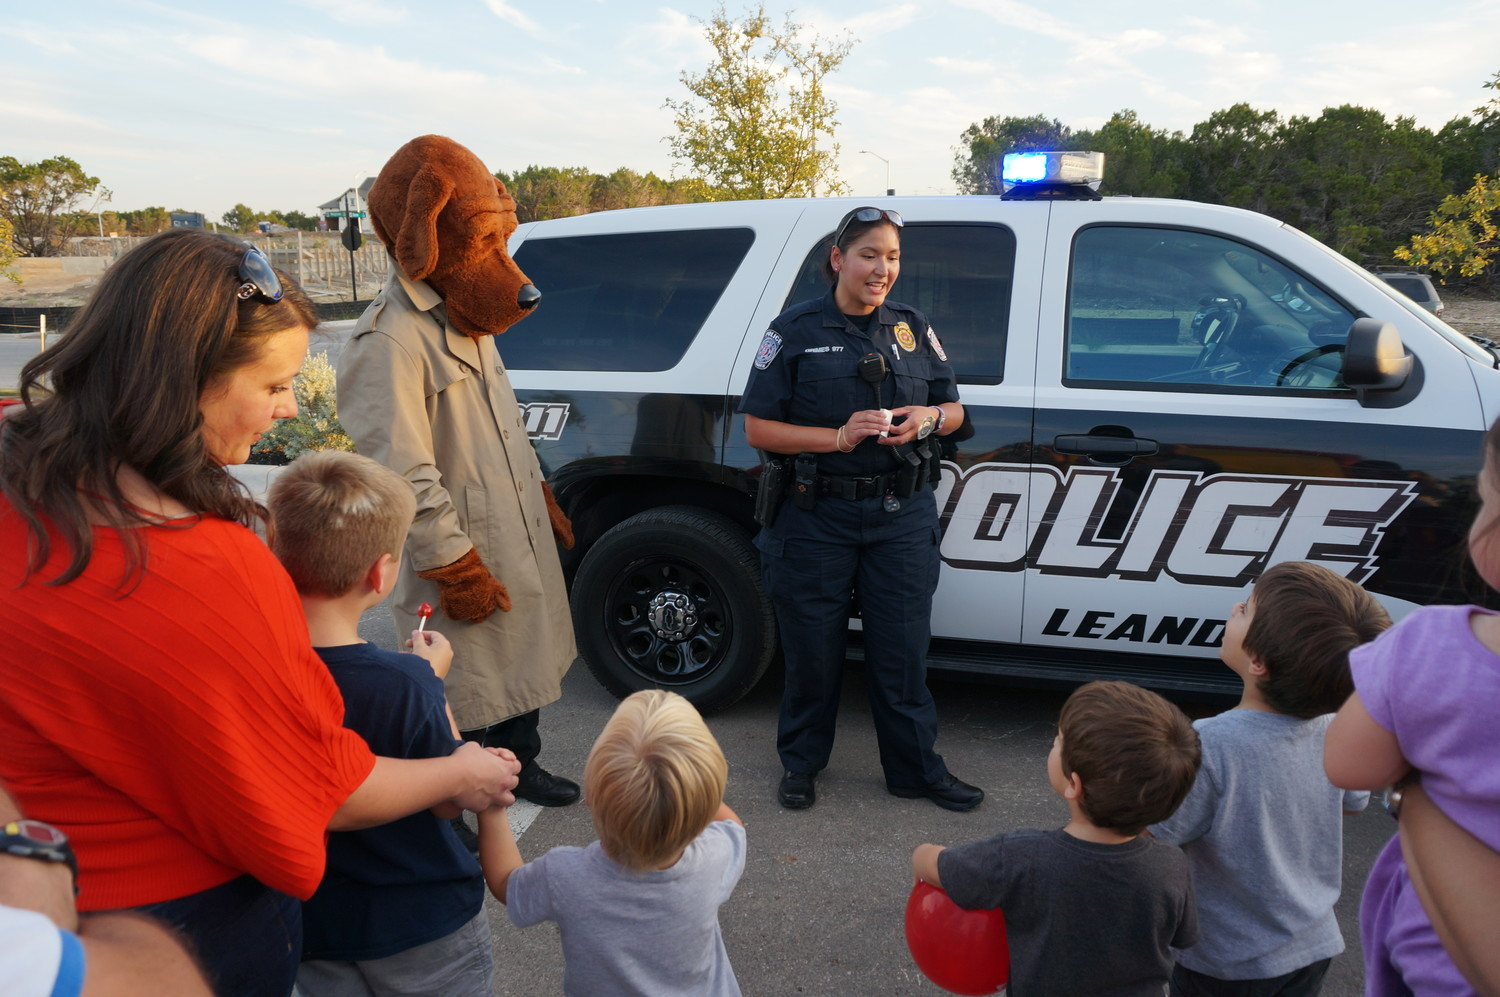 McGruff the crime dog mascot looks on as Leander police officers answer questions from the crowd at National Night Out kick off, Oct. 7, 2015.